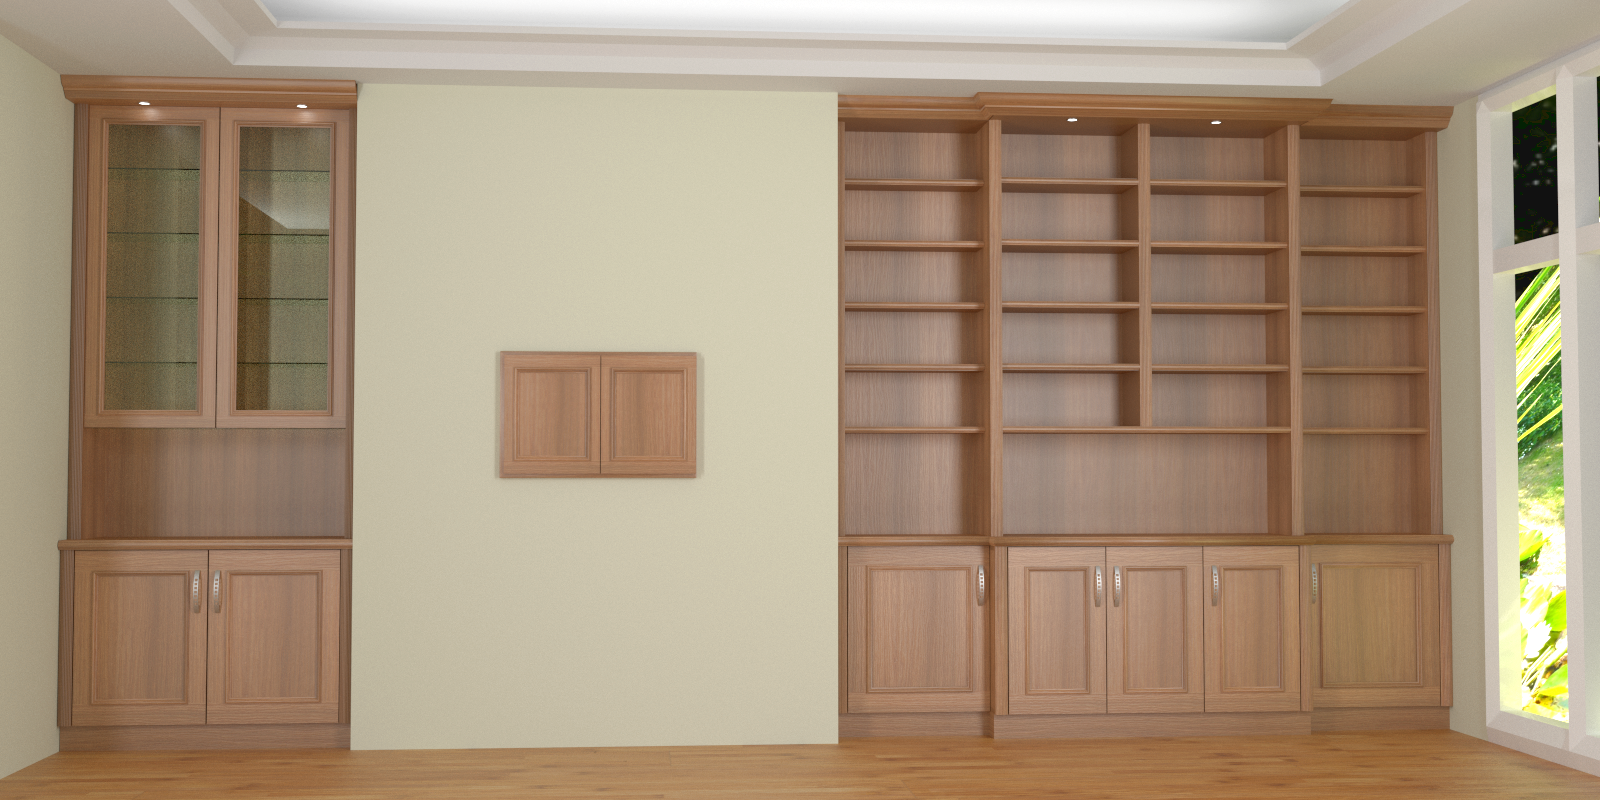 bookcase render 06